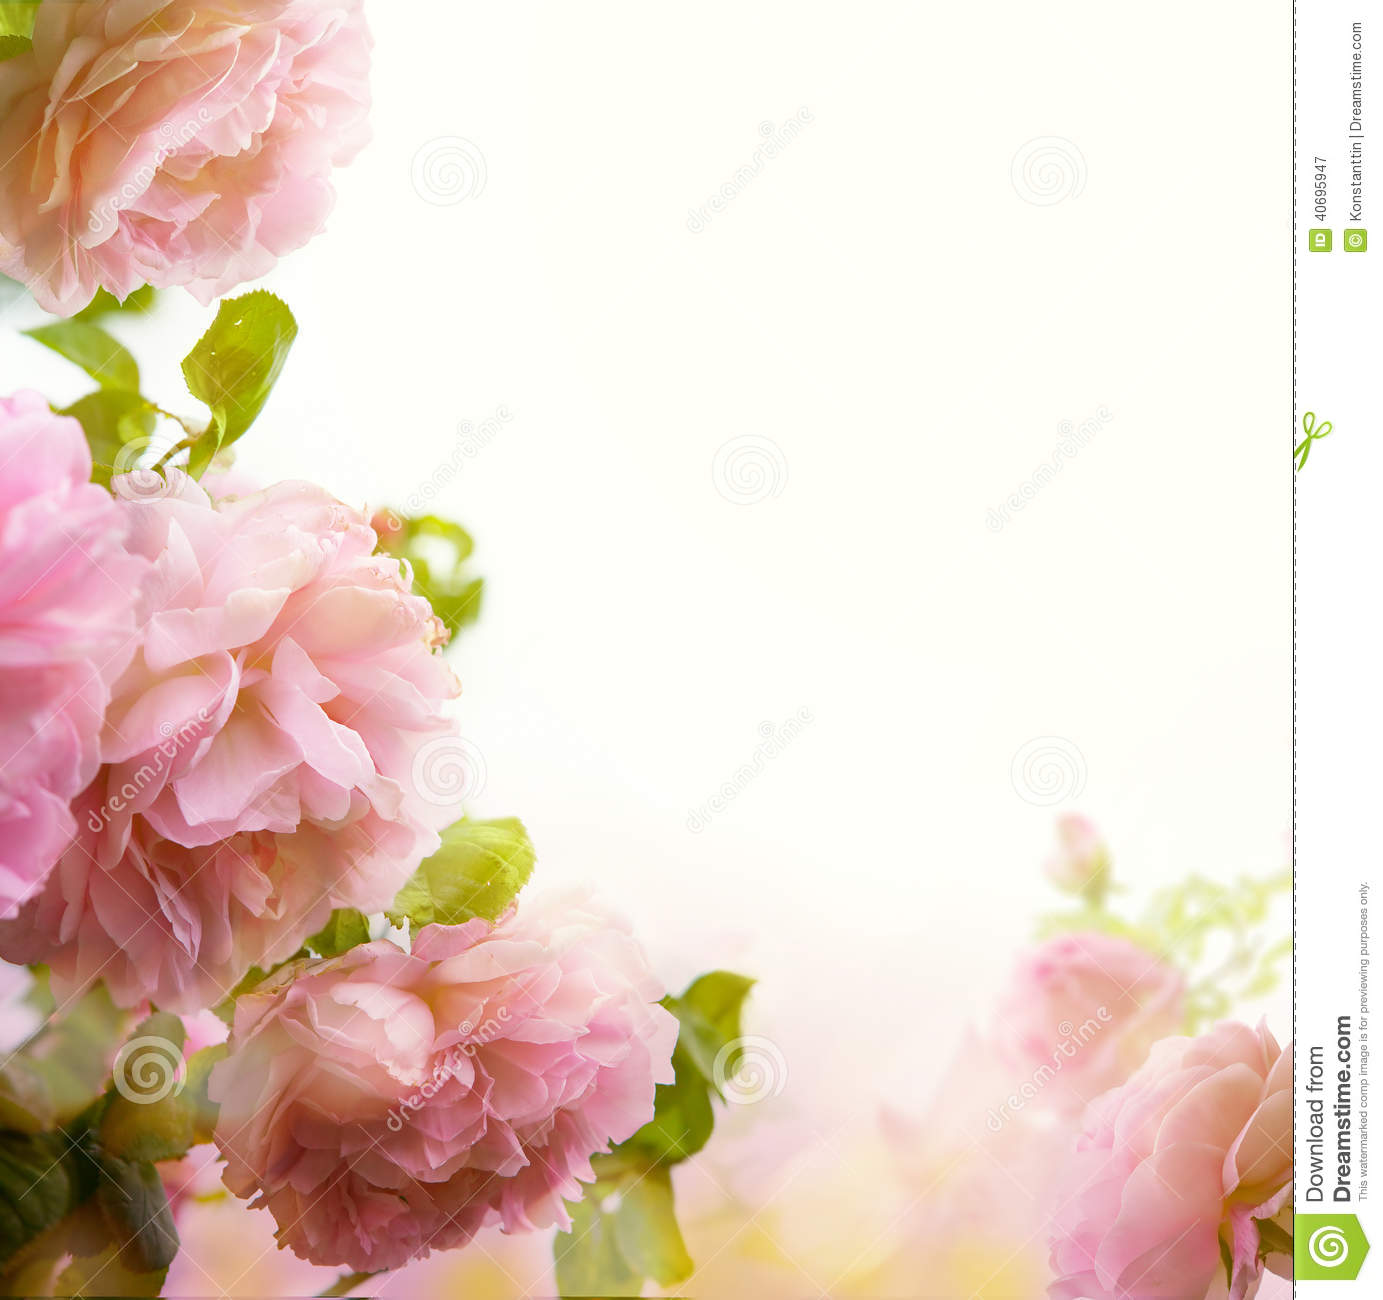 Free Download Image Pink Rose Flower Border Pc Android Iphone And